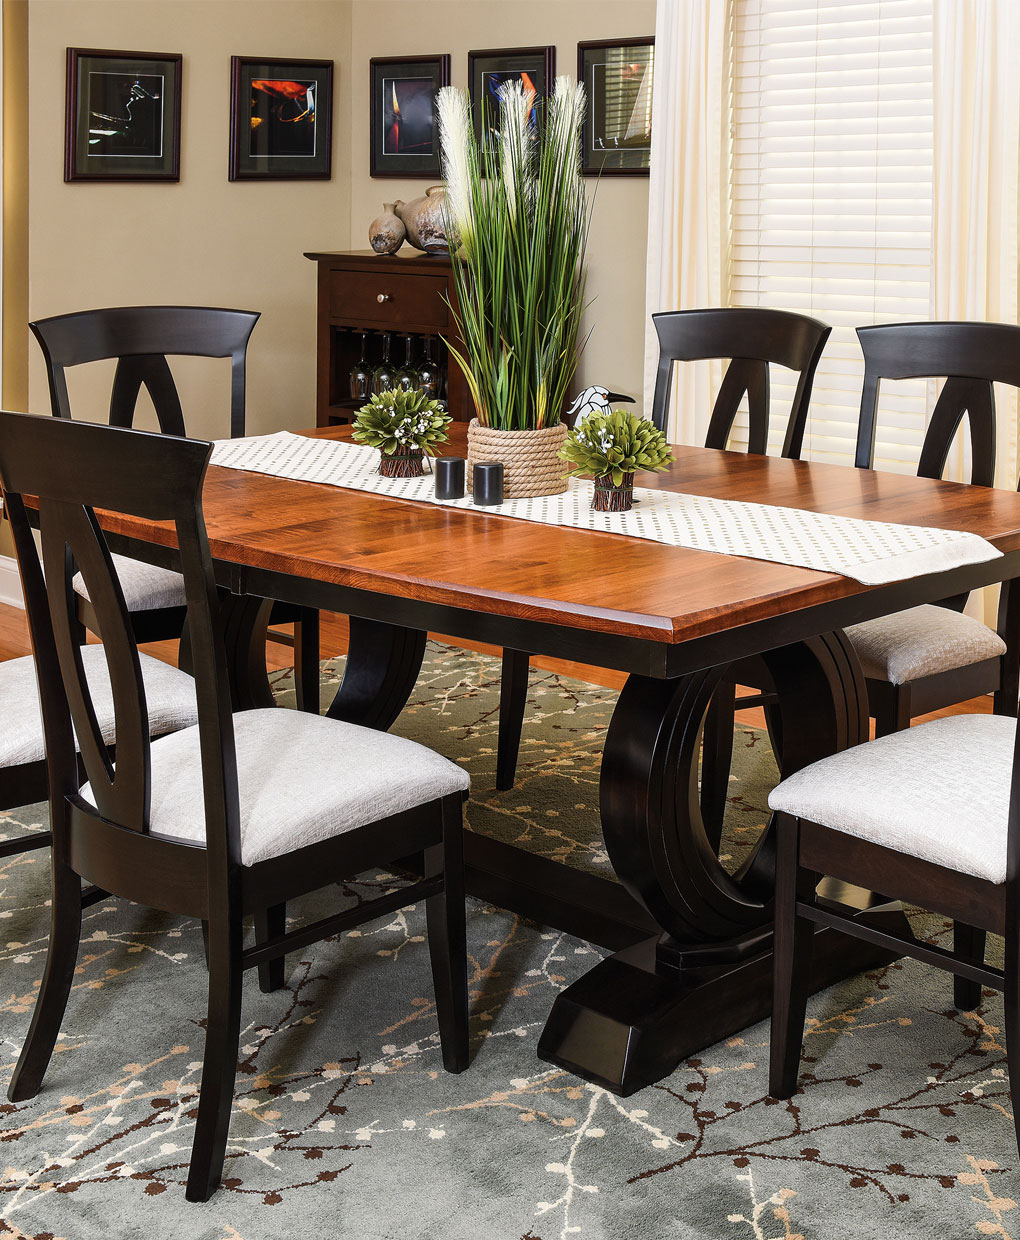 Dining Table Rollins Dining Table: Amish Direct Furniture